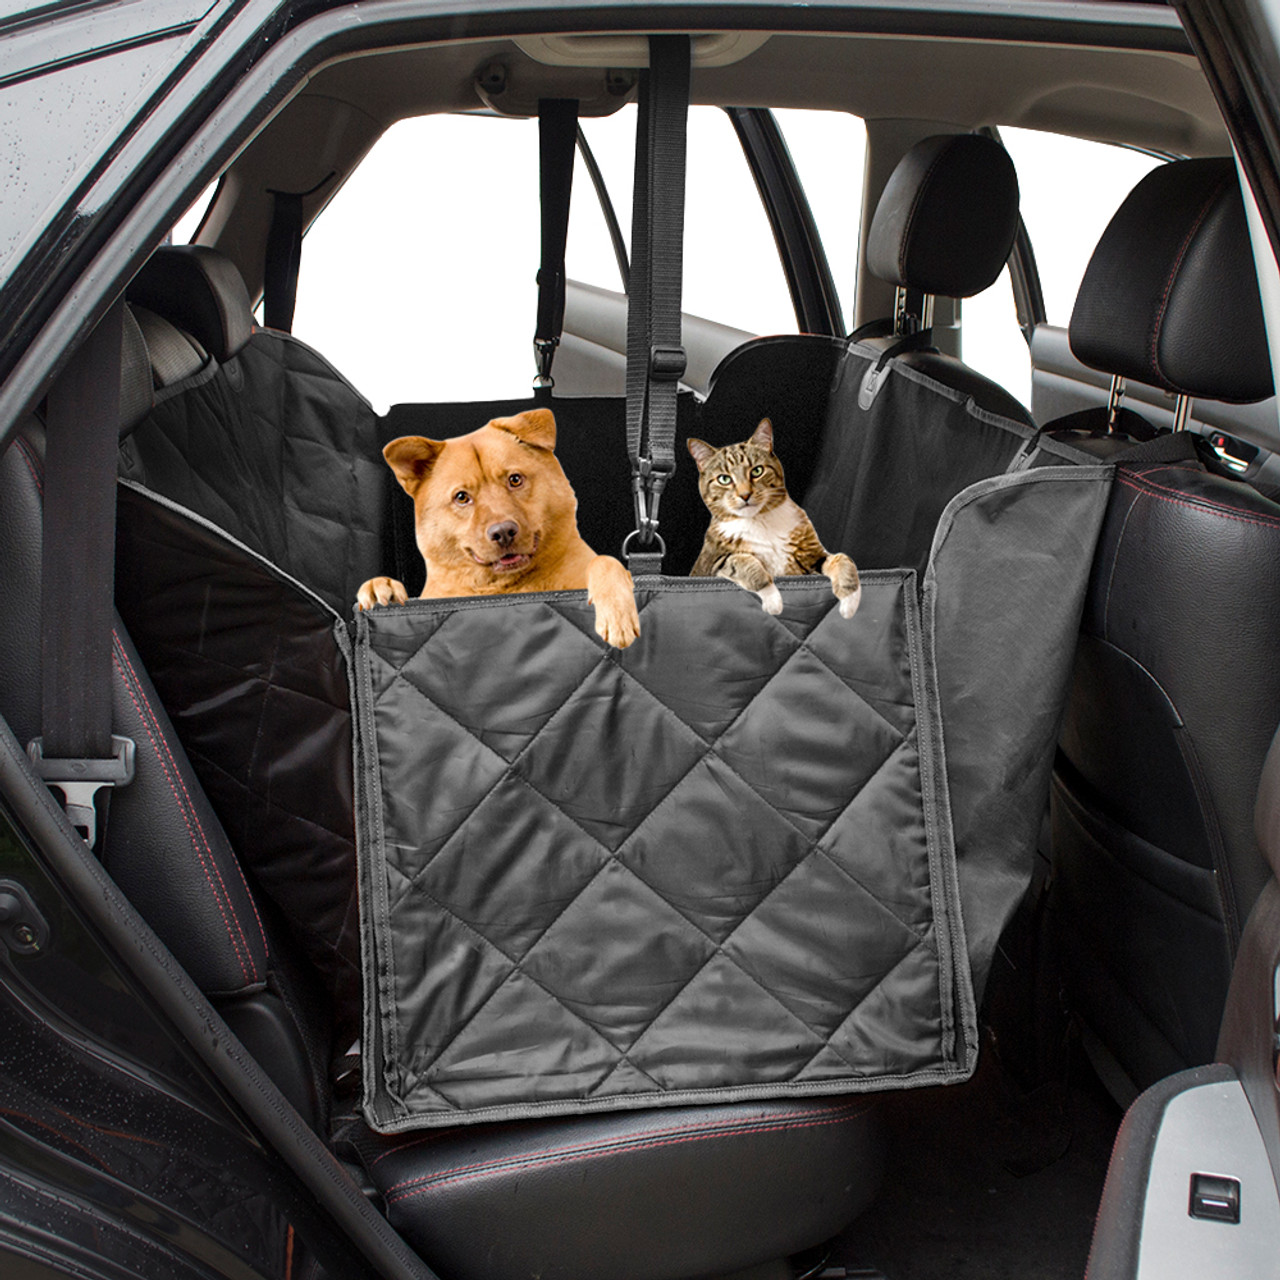 Seat Belts & Padding Waterproof Pet Car Seat Cover Washable Hammock Dog Cat Pet Car Mat Oxford Car Travel Accessories Single Seat Cheapest Price From Our Site Interior Accessories